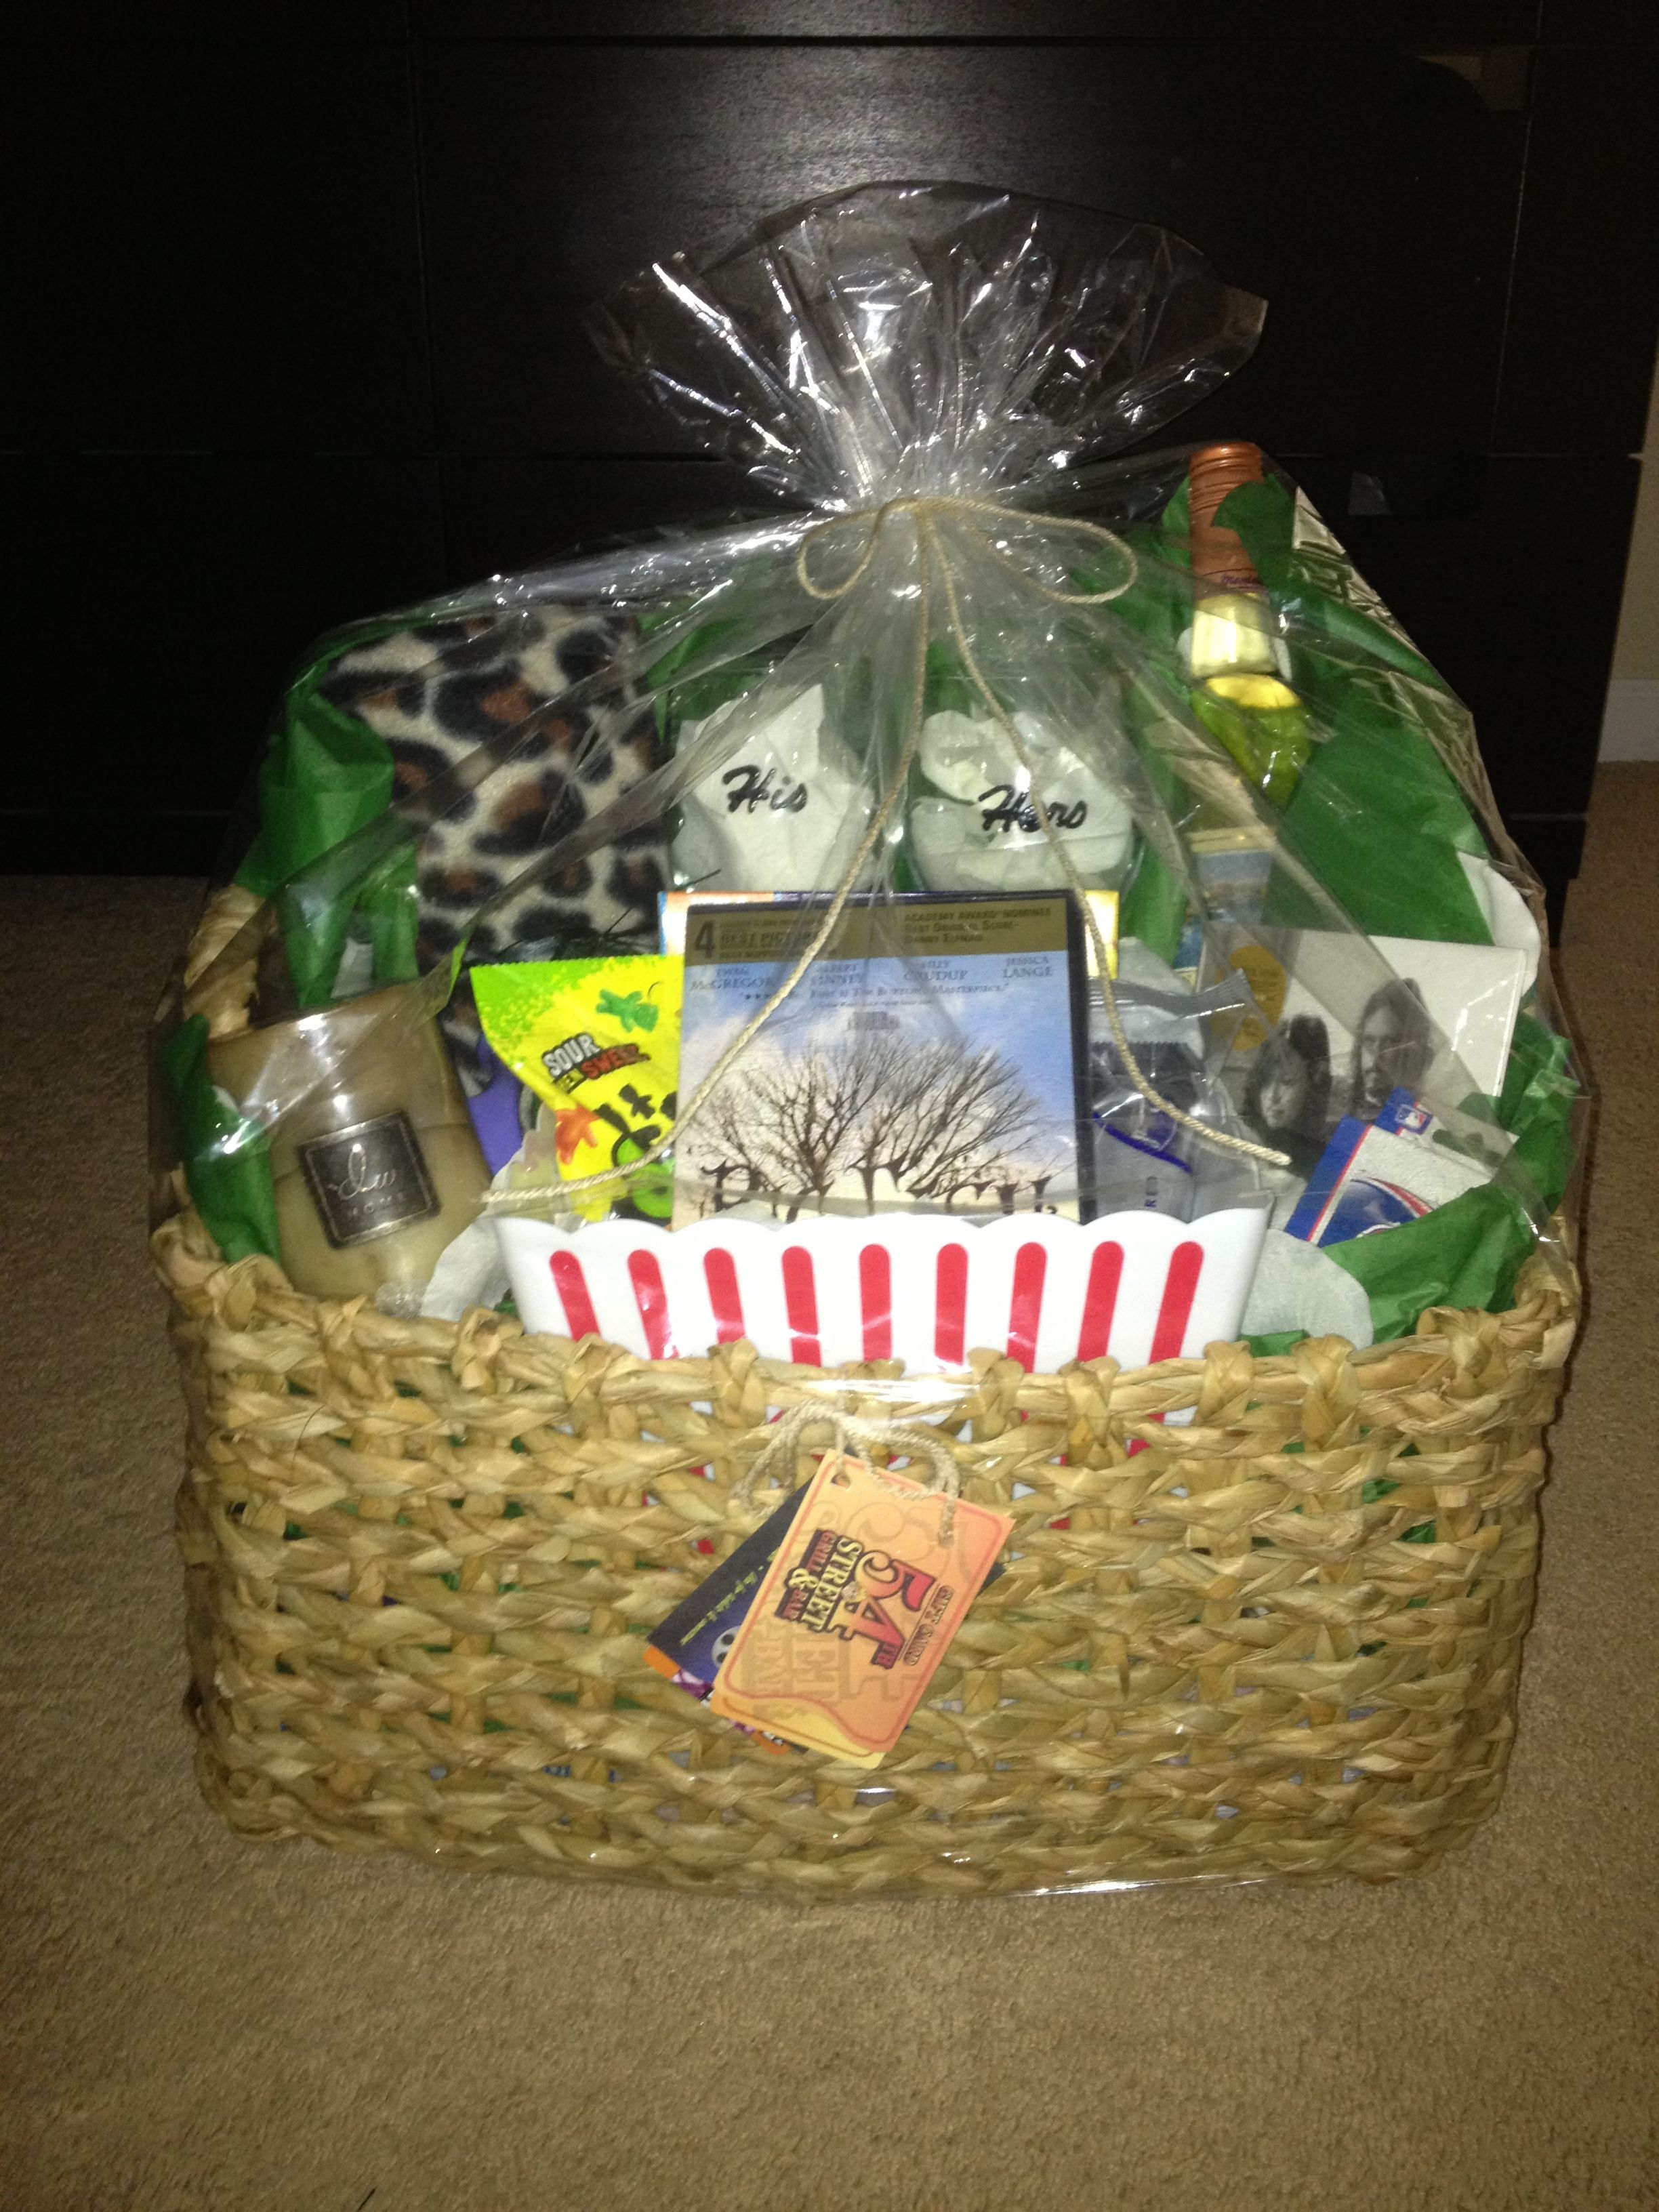 Pin By Brittany Montgomery On My Finished Projects Movie Night Gift Basket Couple Gifts Basket Couple Gift Basket Ideas